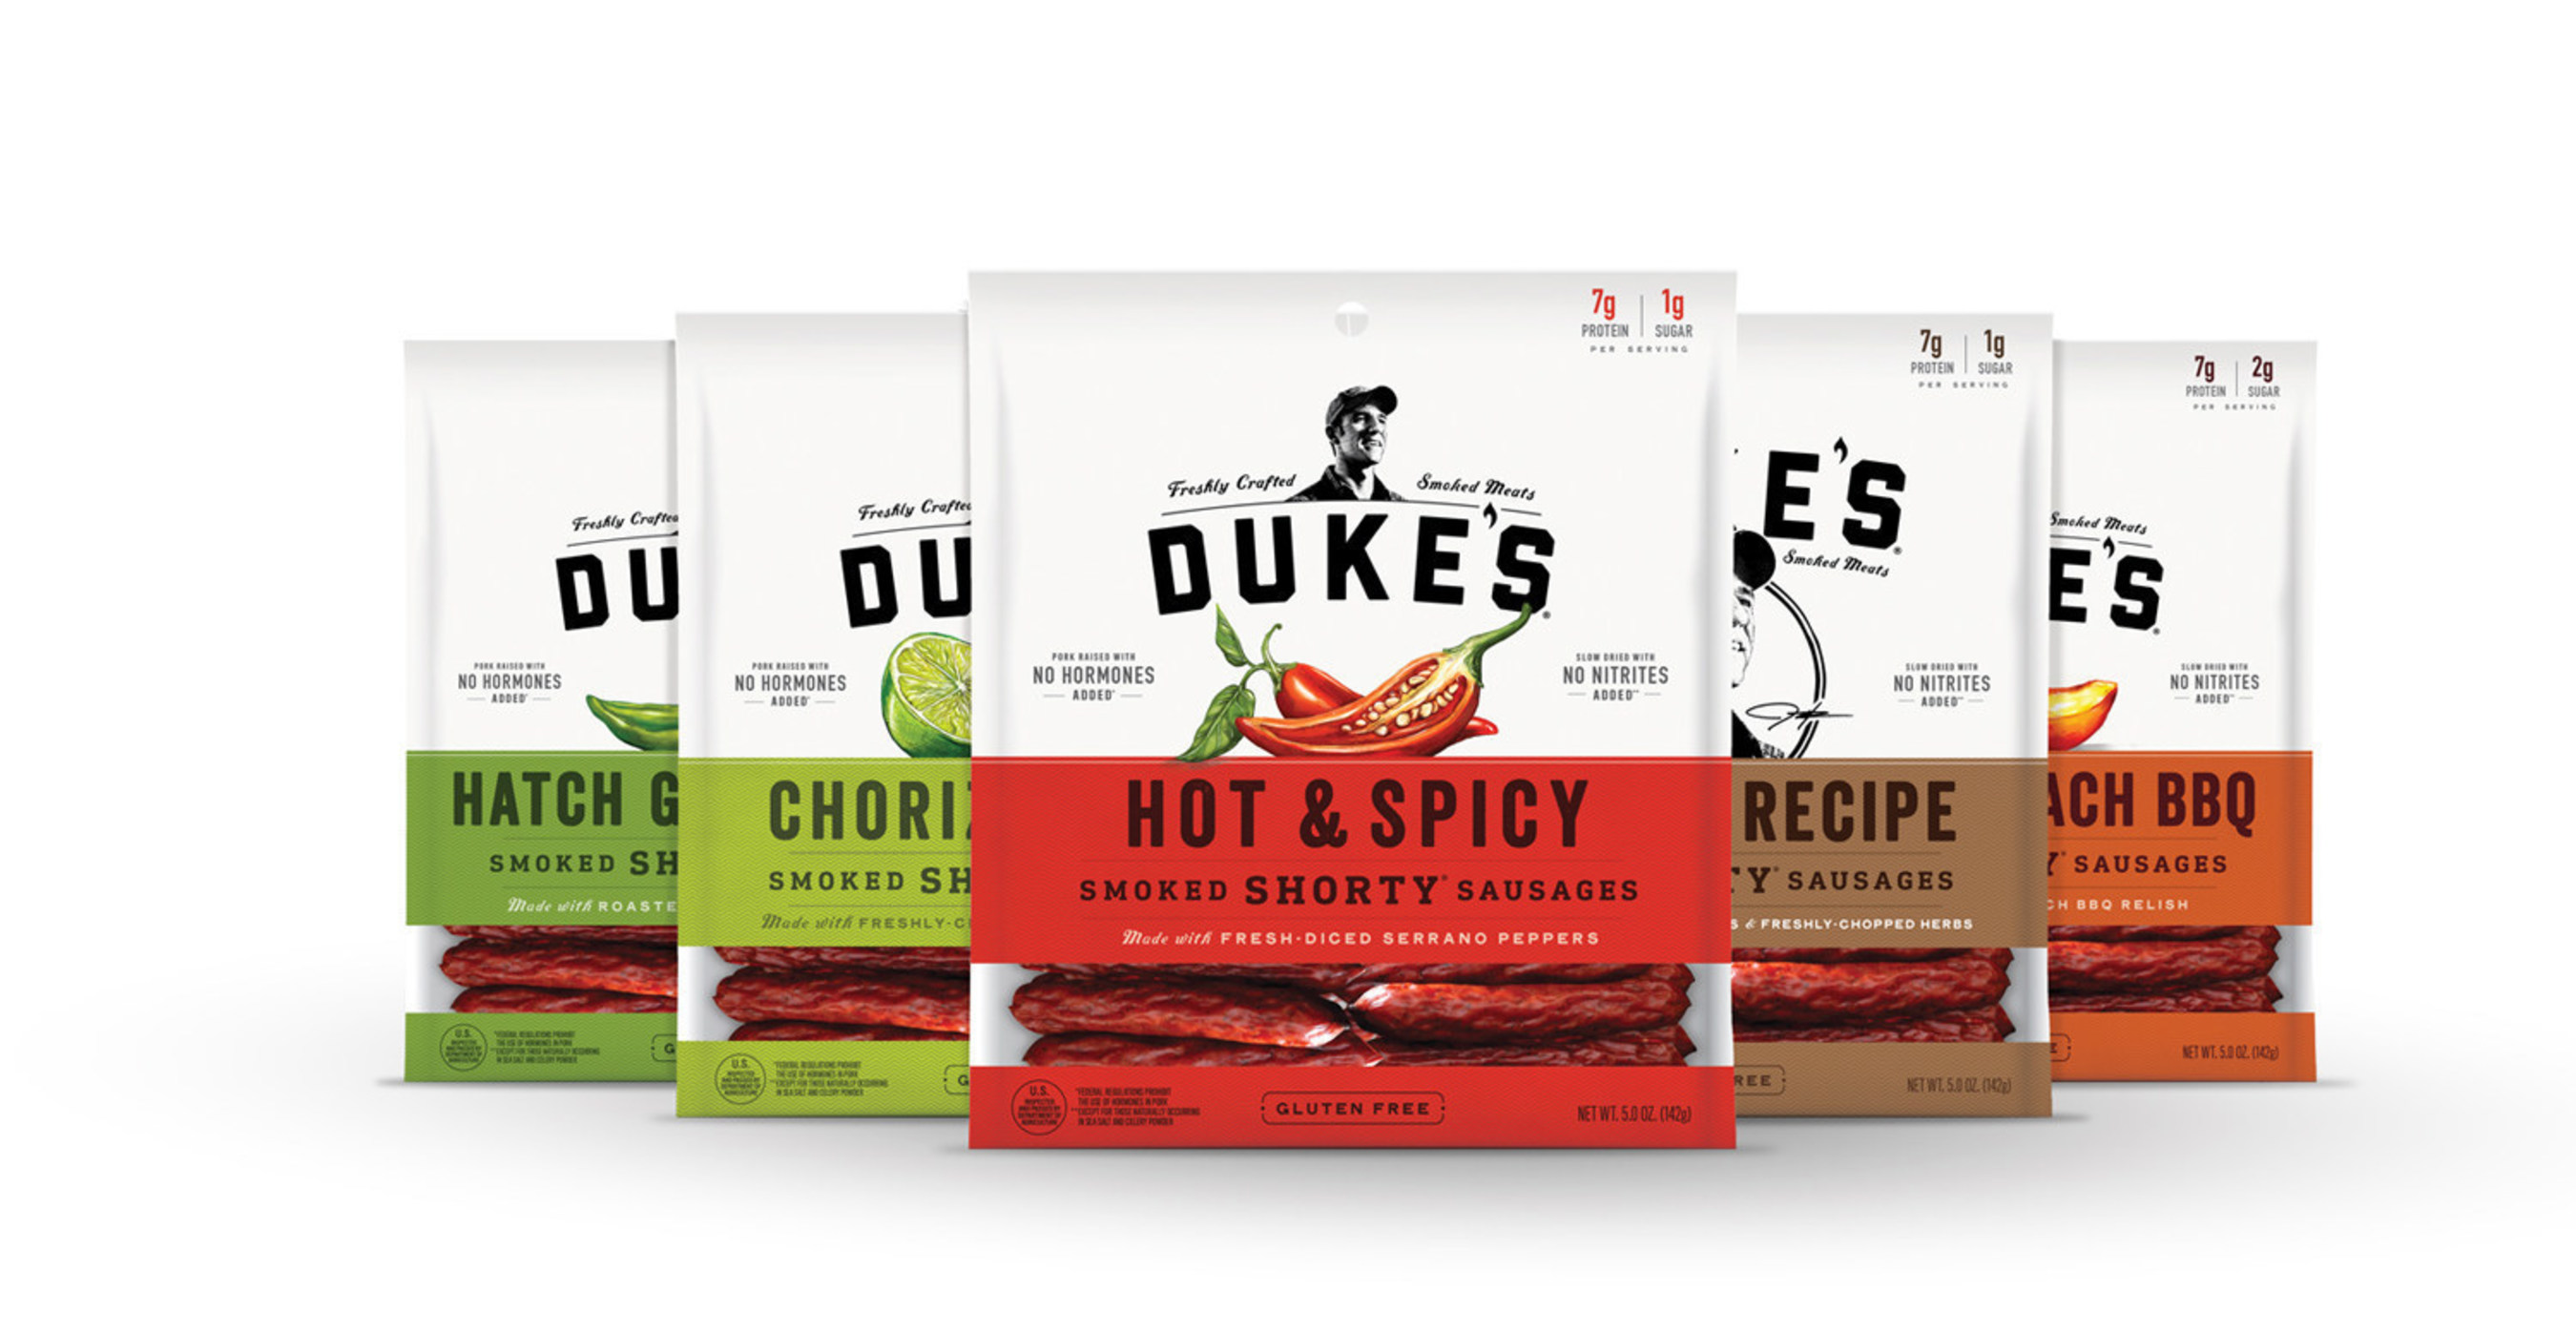 Duke's Smoked Meats Launches New Look & New Products Nationwide